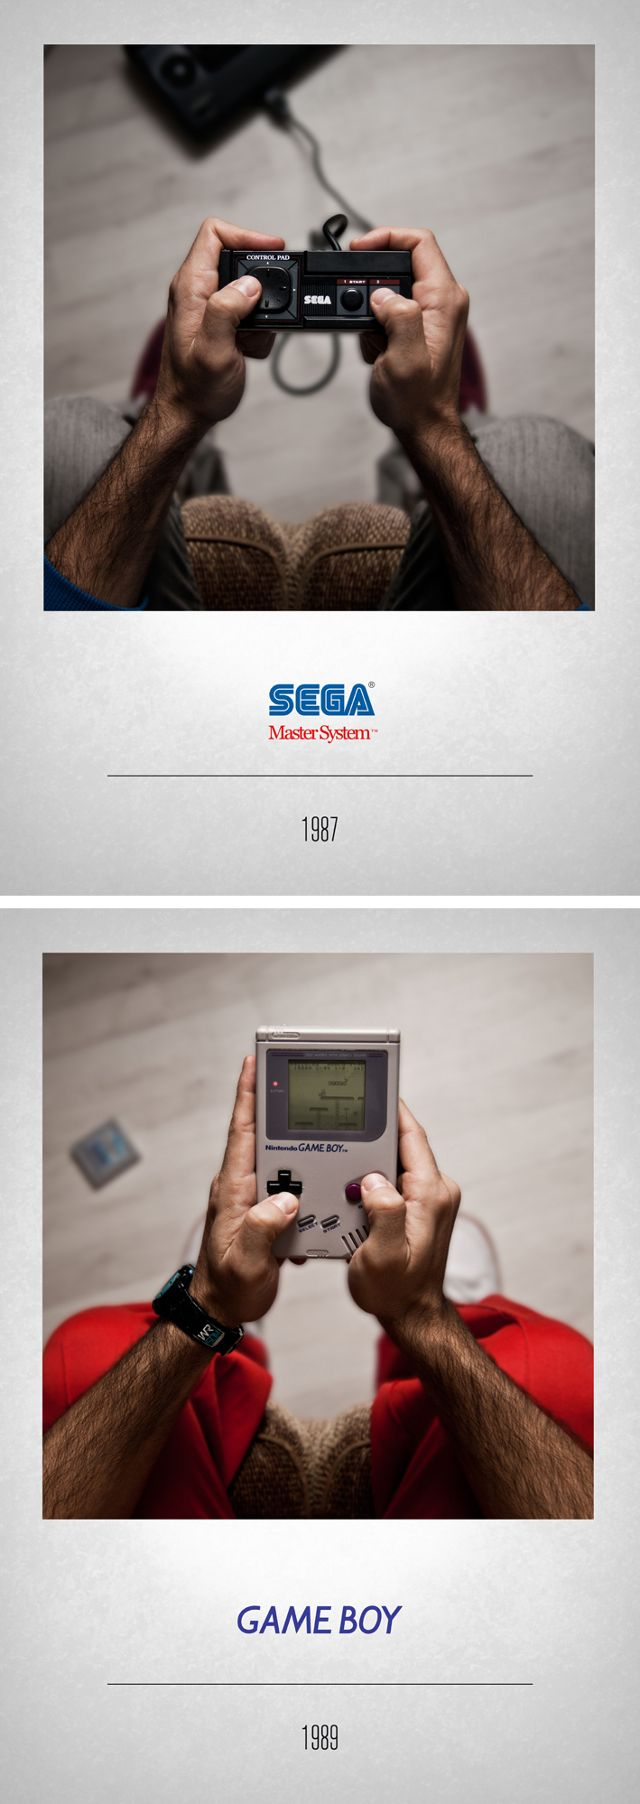 Video Game History Through Controllers – Fubiz™